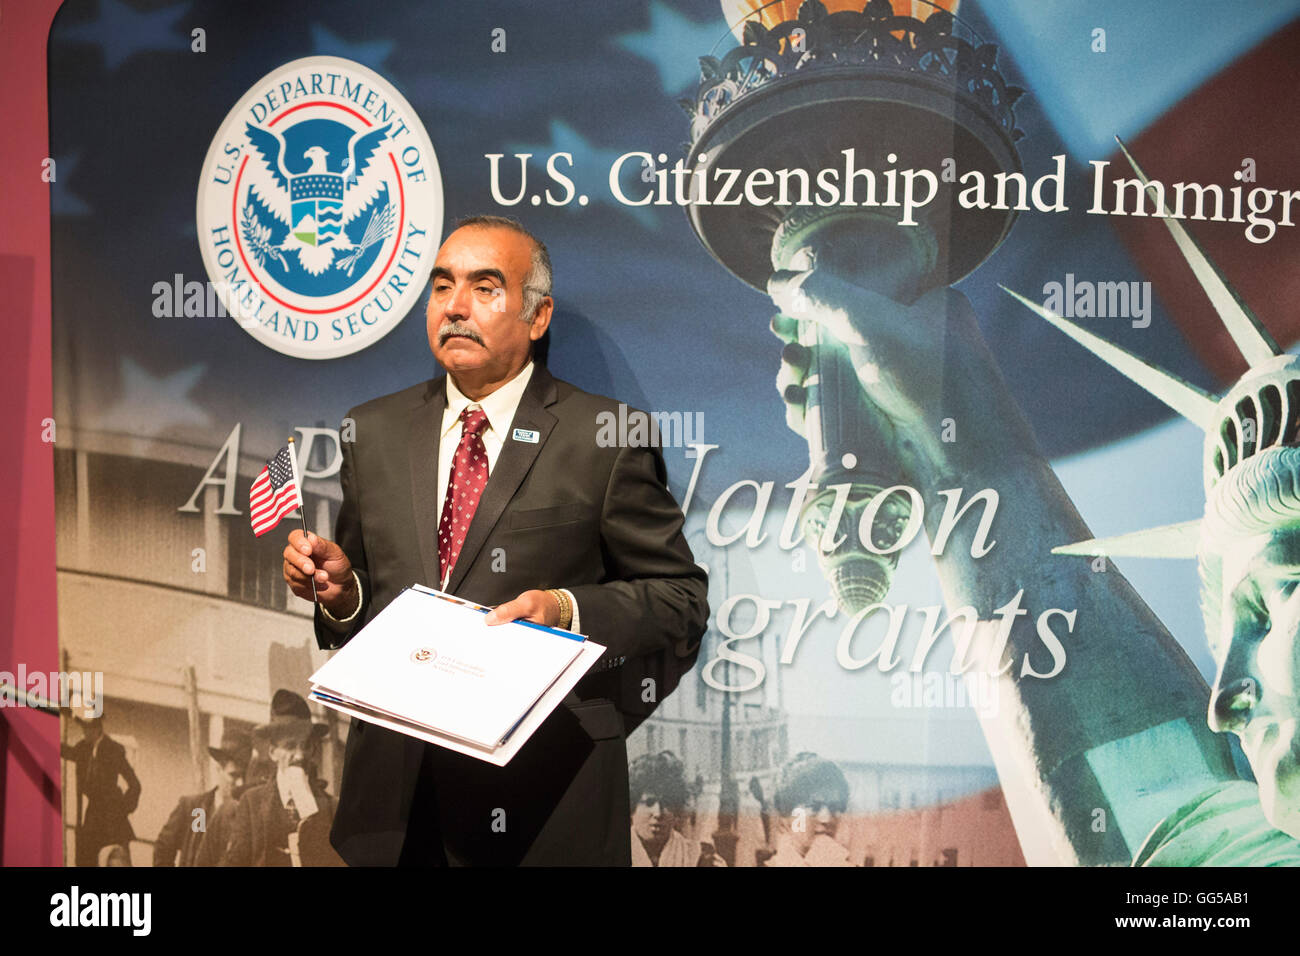 New United States citizen poses with certificate of naturalization during citizenship ceremony in San Antonio Texas - Stock Image